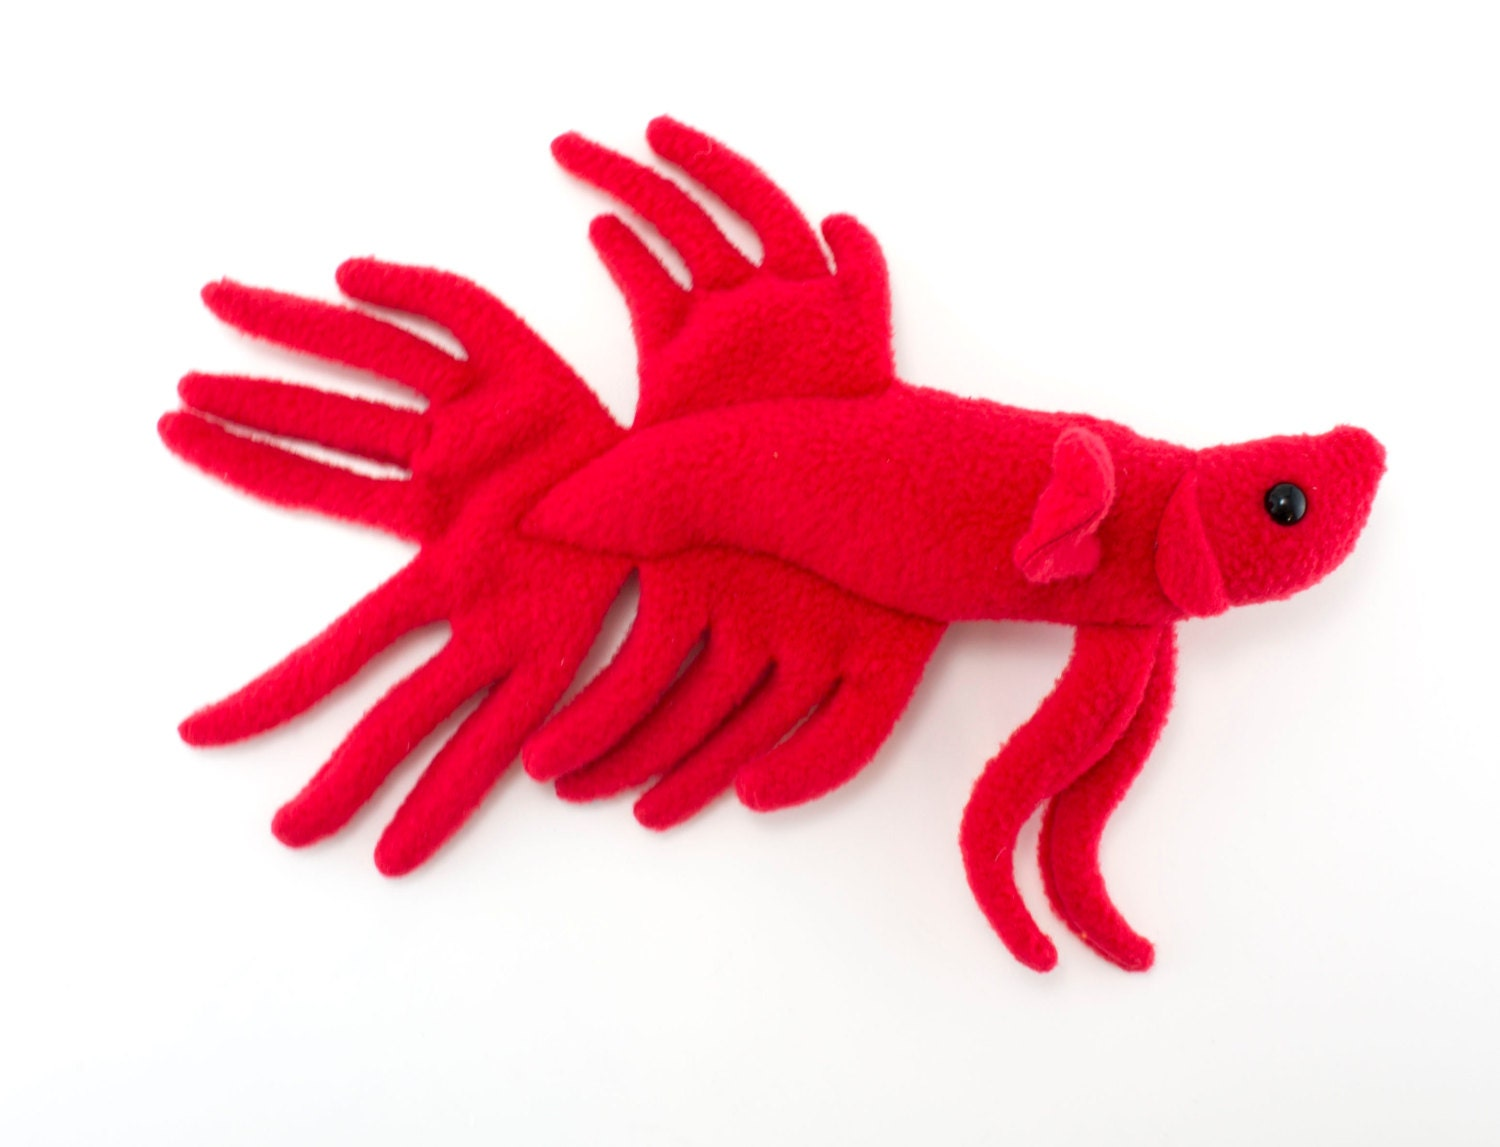 Red betta fish stuffed animal plush toy crown tail type for Betta fish toys